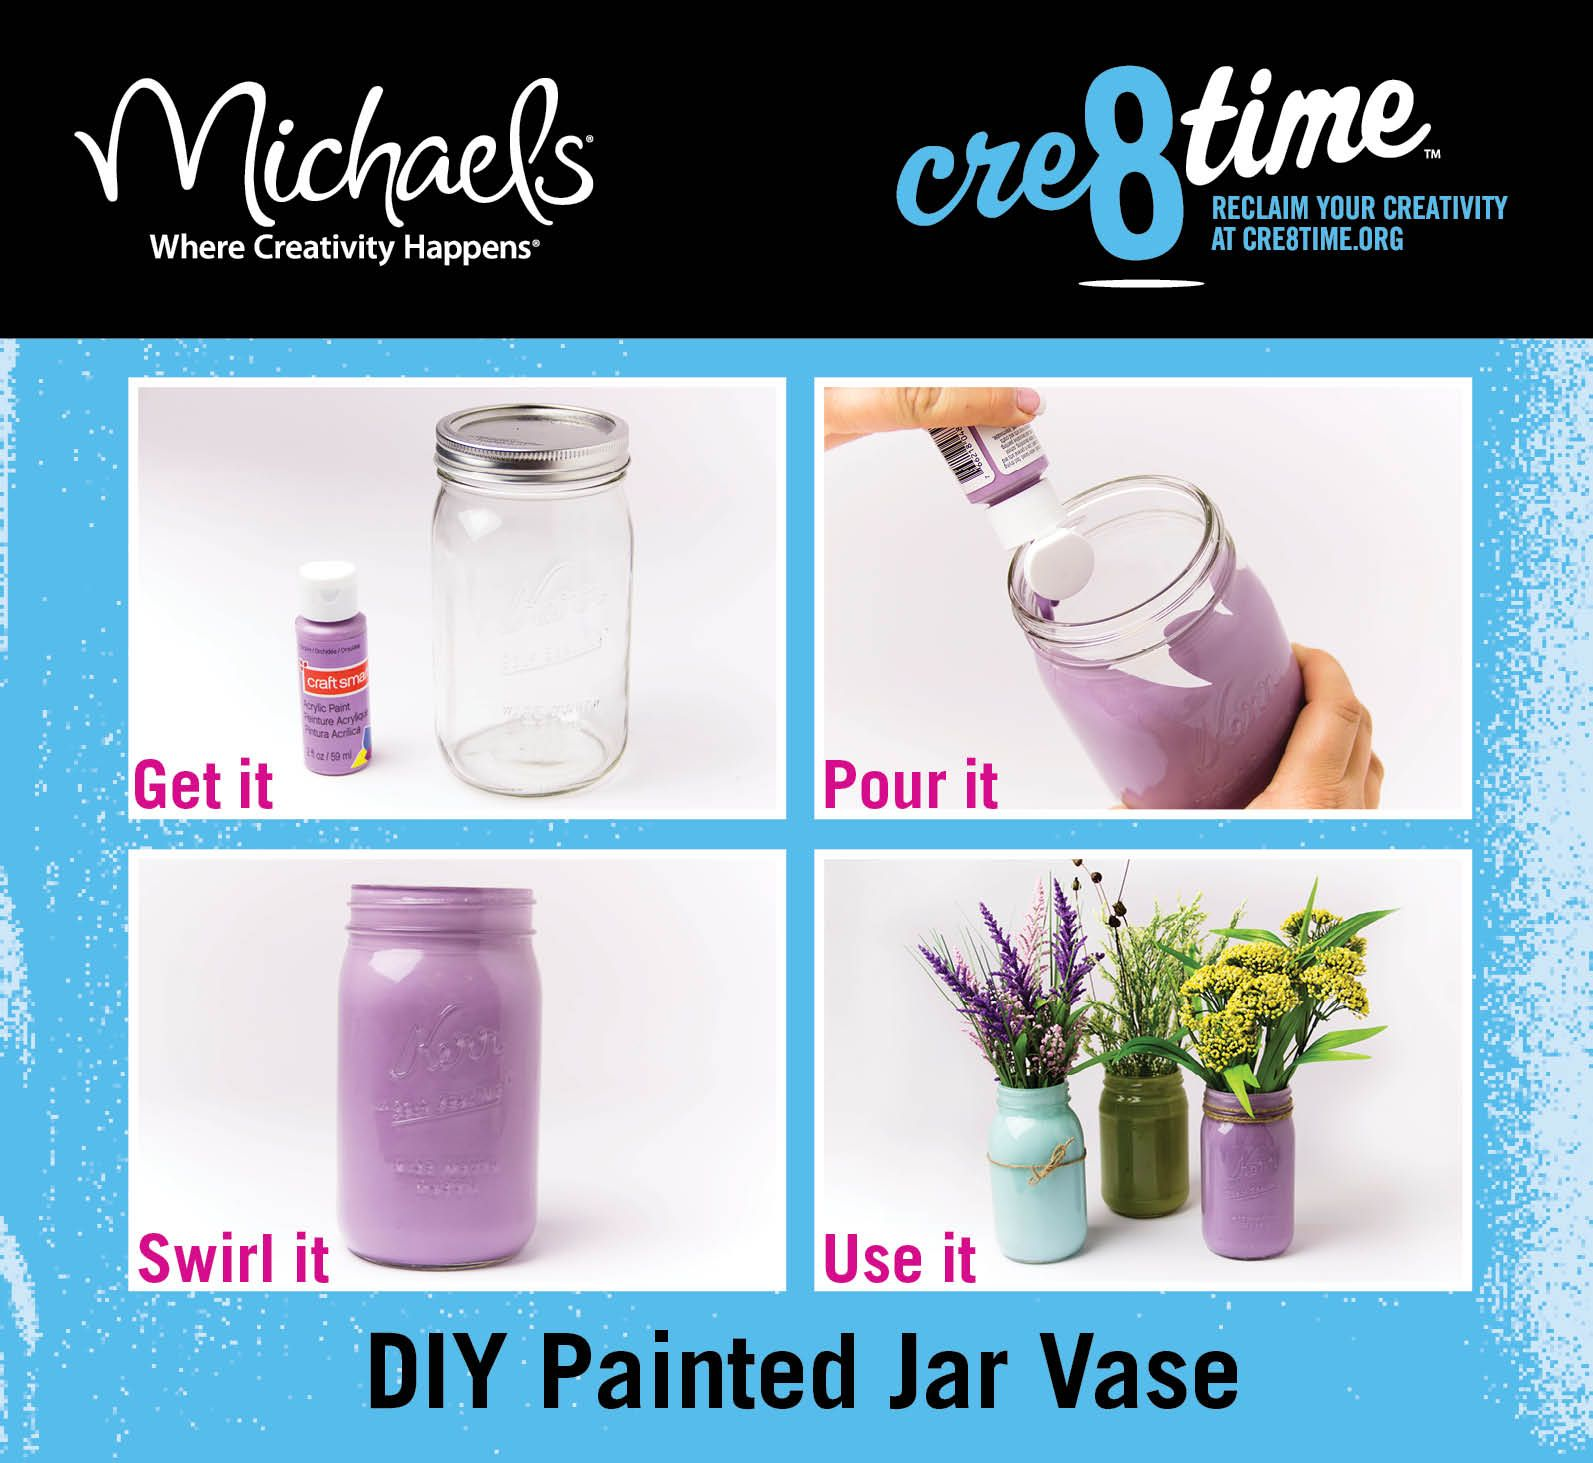 Diy painted vase materials for this project craftsmart acrylic diy painted vase materials for this project craftsmart acrylic paint glass jar floridaeventfo Images